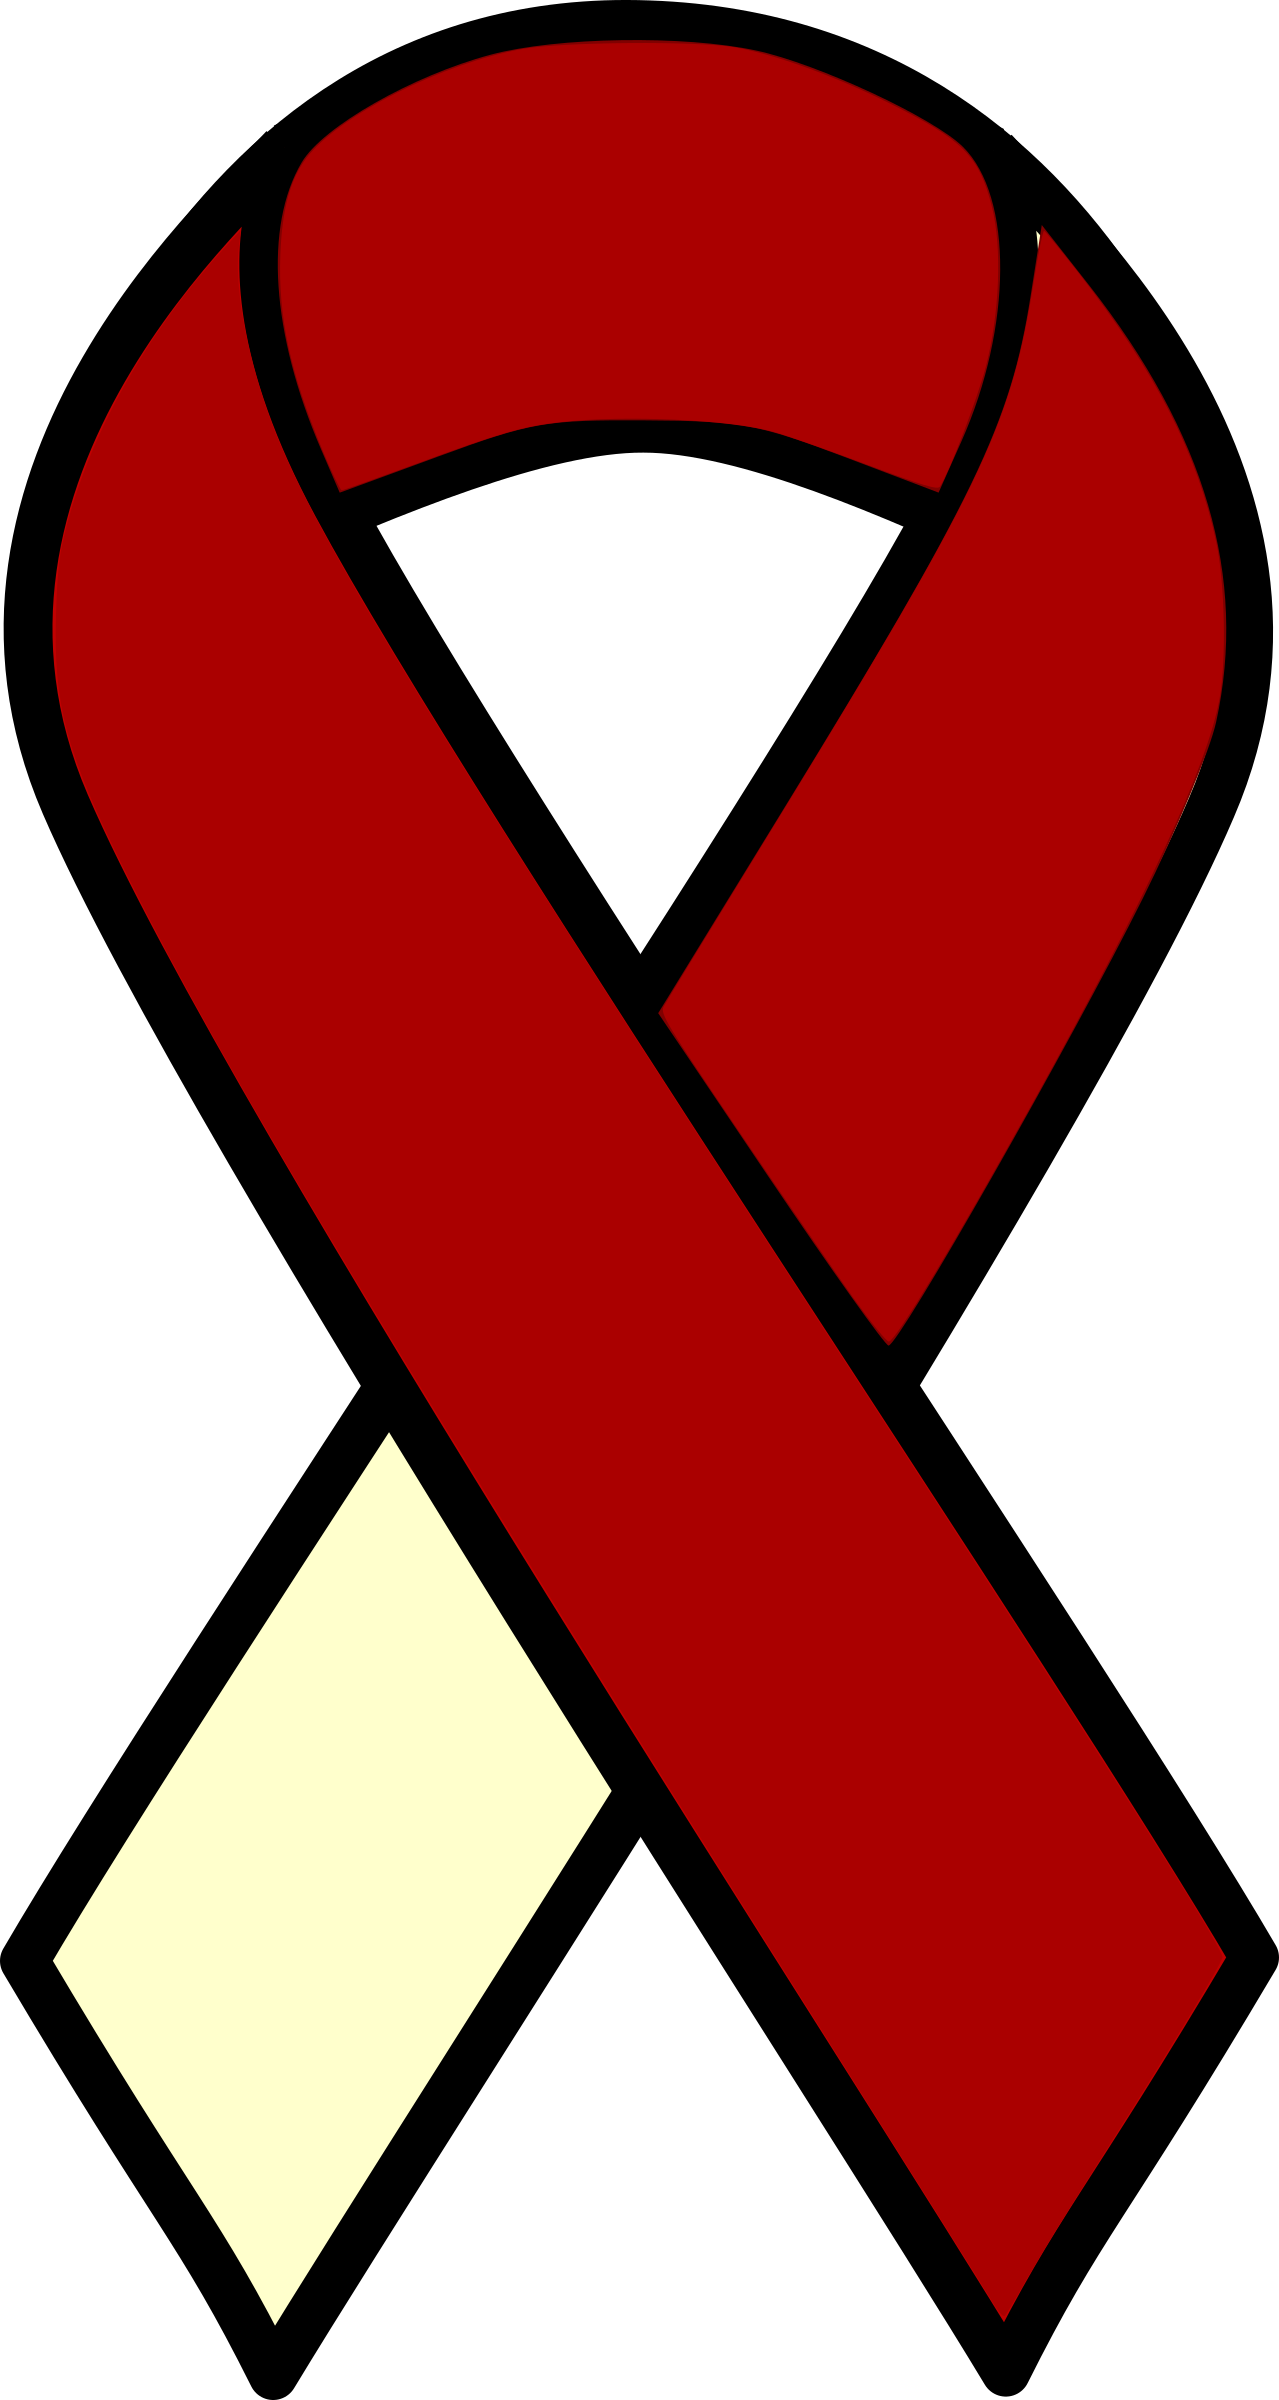 Lymphoma cancer symbol images symbol and sign ideas cancer ribbon clipart free download best cancer ribbon clipart 1279x2400 cancer ribbon clipart hostted buycottarizona biocorpaavc